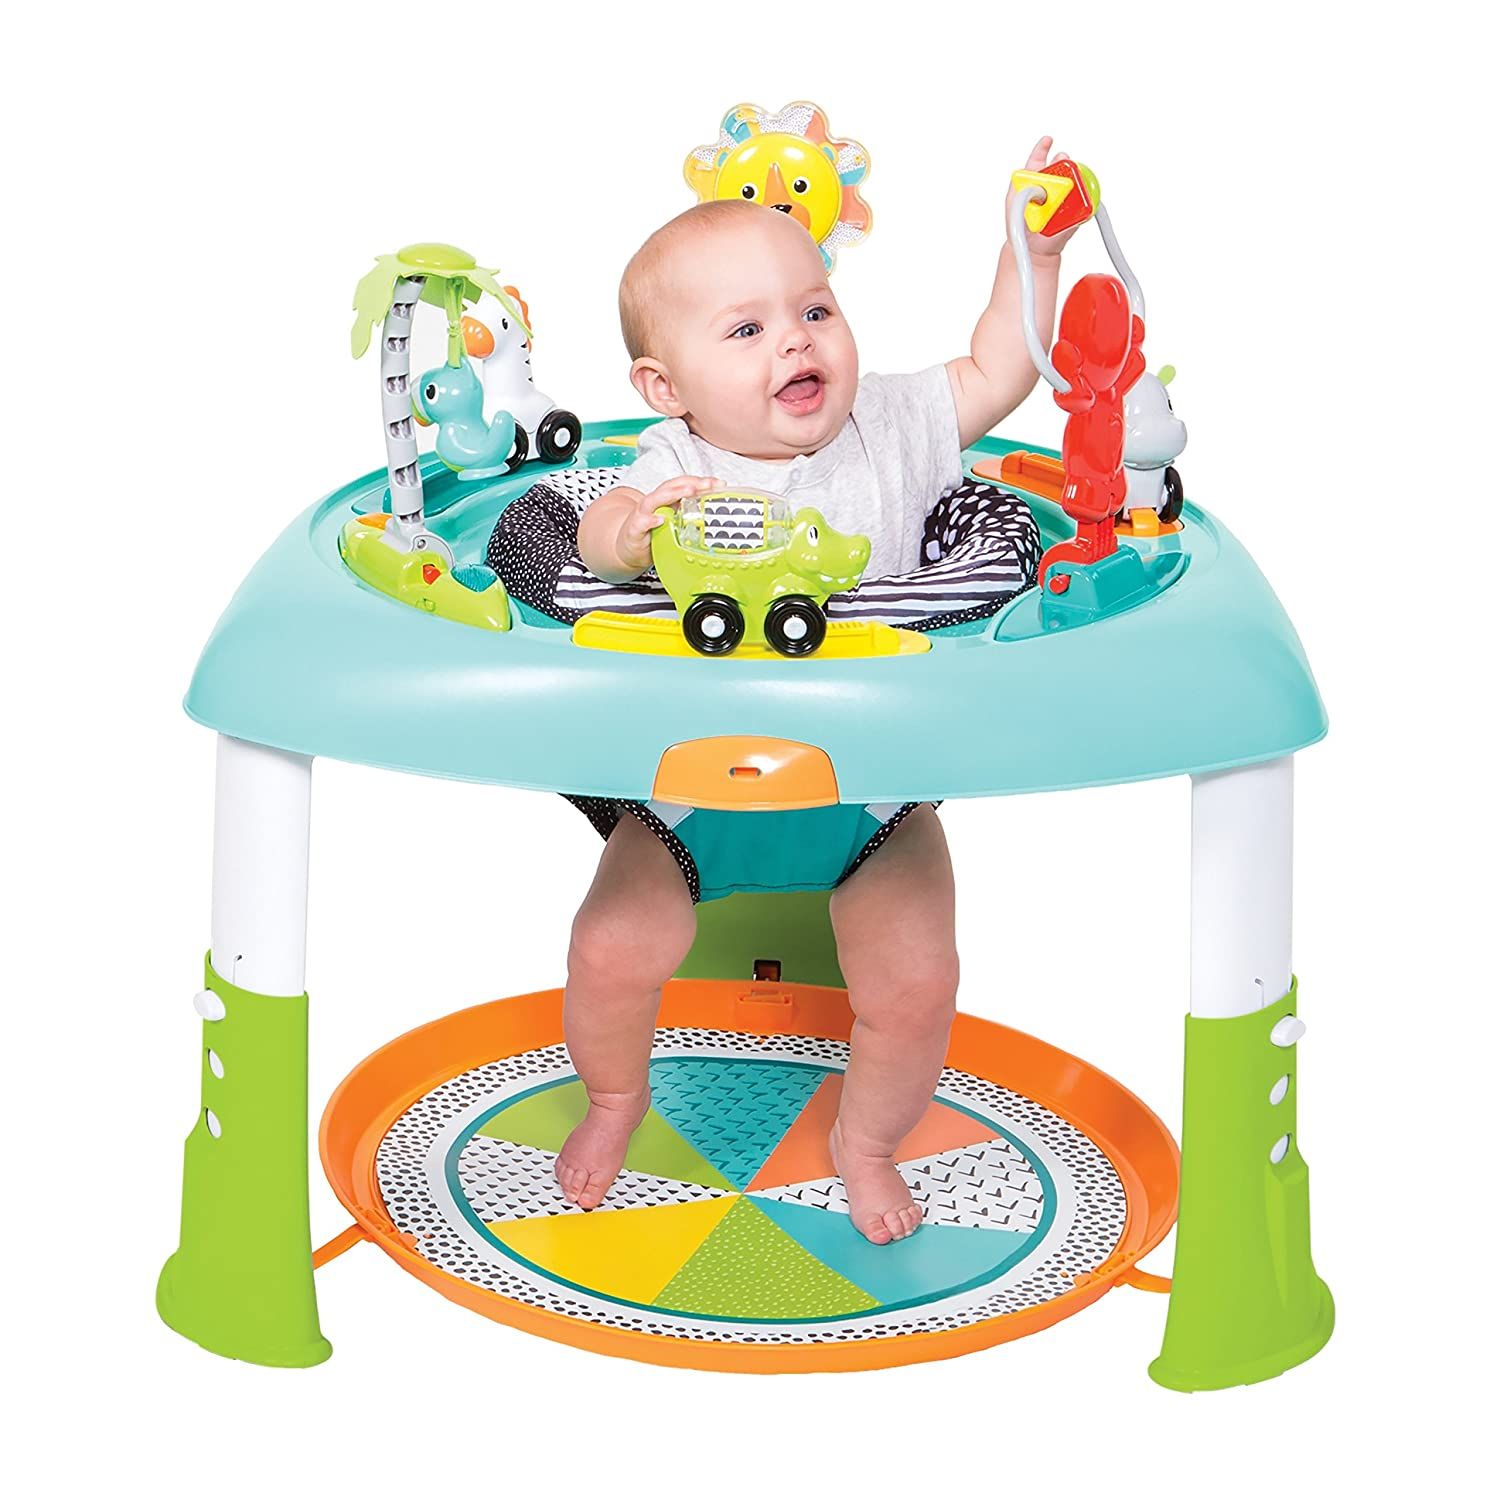 Infantino Sit, Spin & Stand Entertainer 360 Seat & Activity Table 203-002